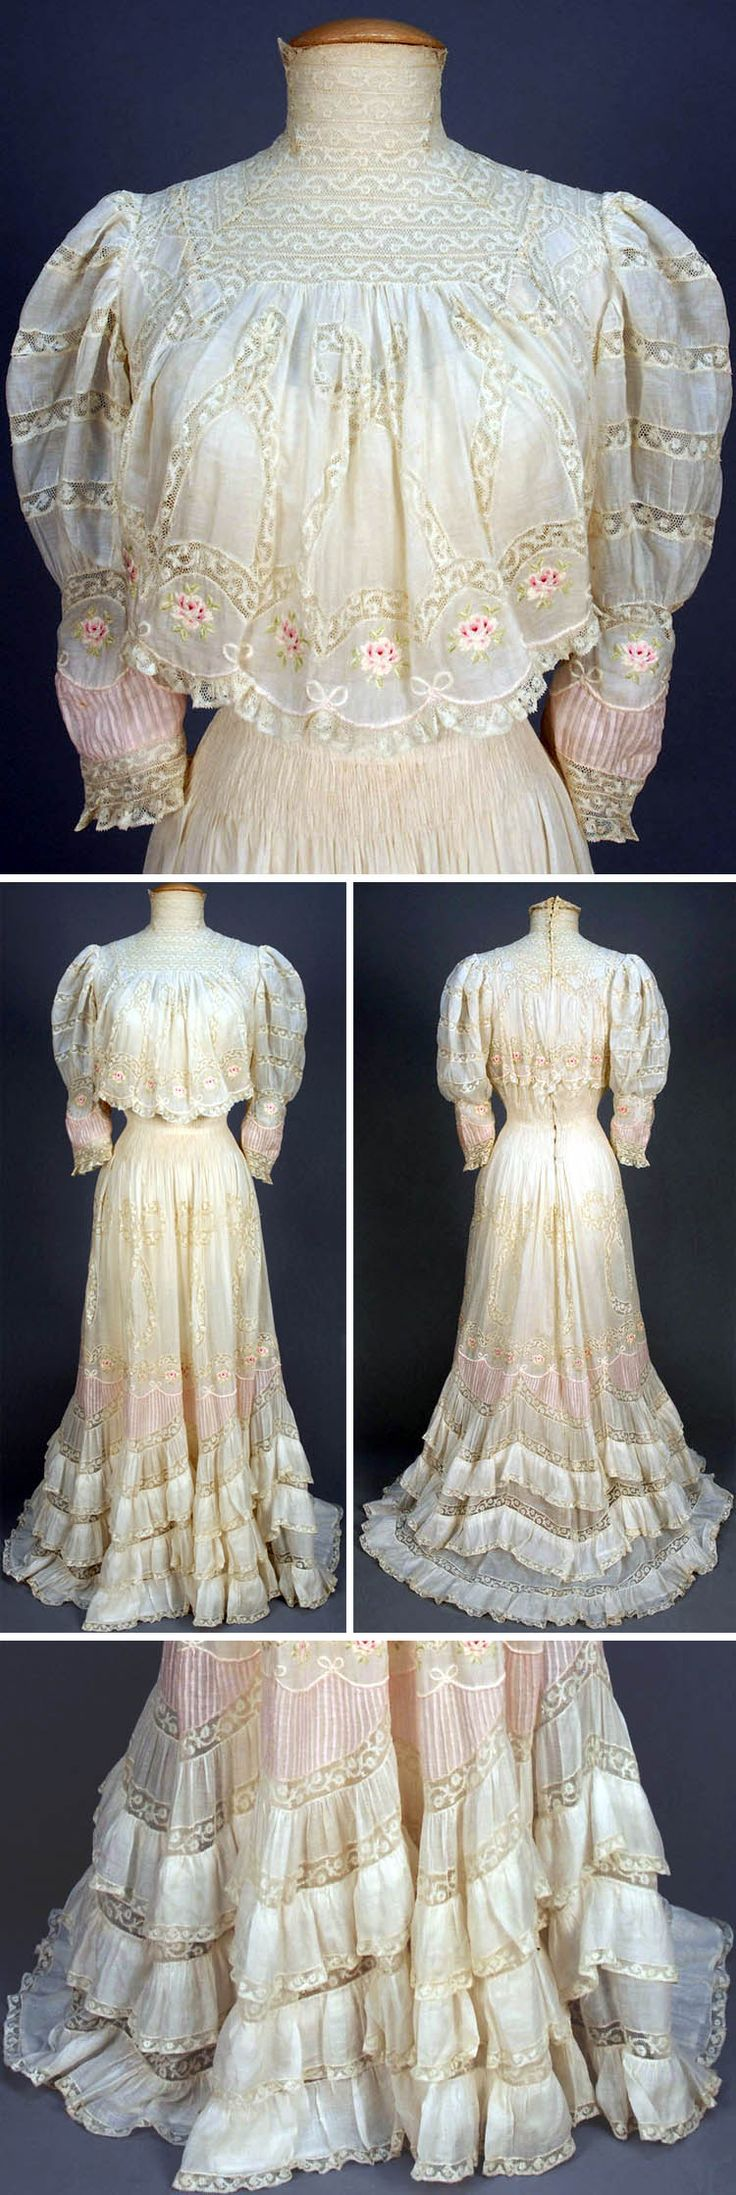 Circa 1900 Tea Gown: White cotton lawn with high neck of Valenciennes lace and bands in pattern of loops and bows. Another band of polychrome embroidered roses at lower bodice, sleeves, and skirt, which also have scalloped inserts of tucked pink cotton beneath embroidered bows. Lower skirt ruffled in three bands. Via Whitaker Auctions.